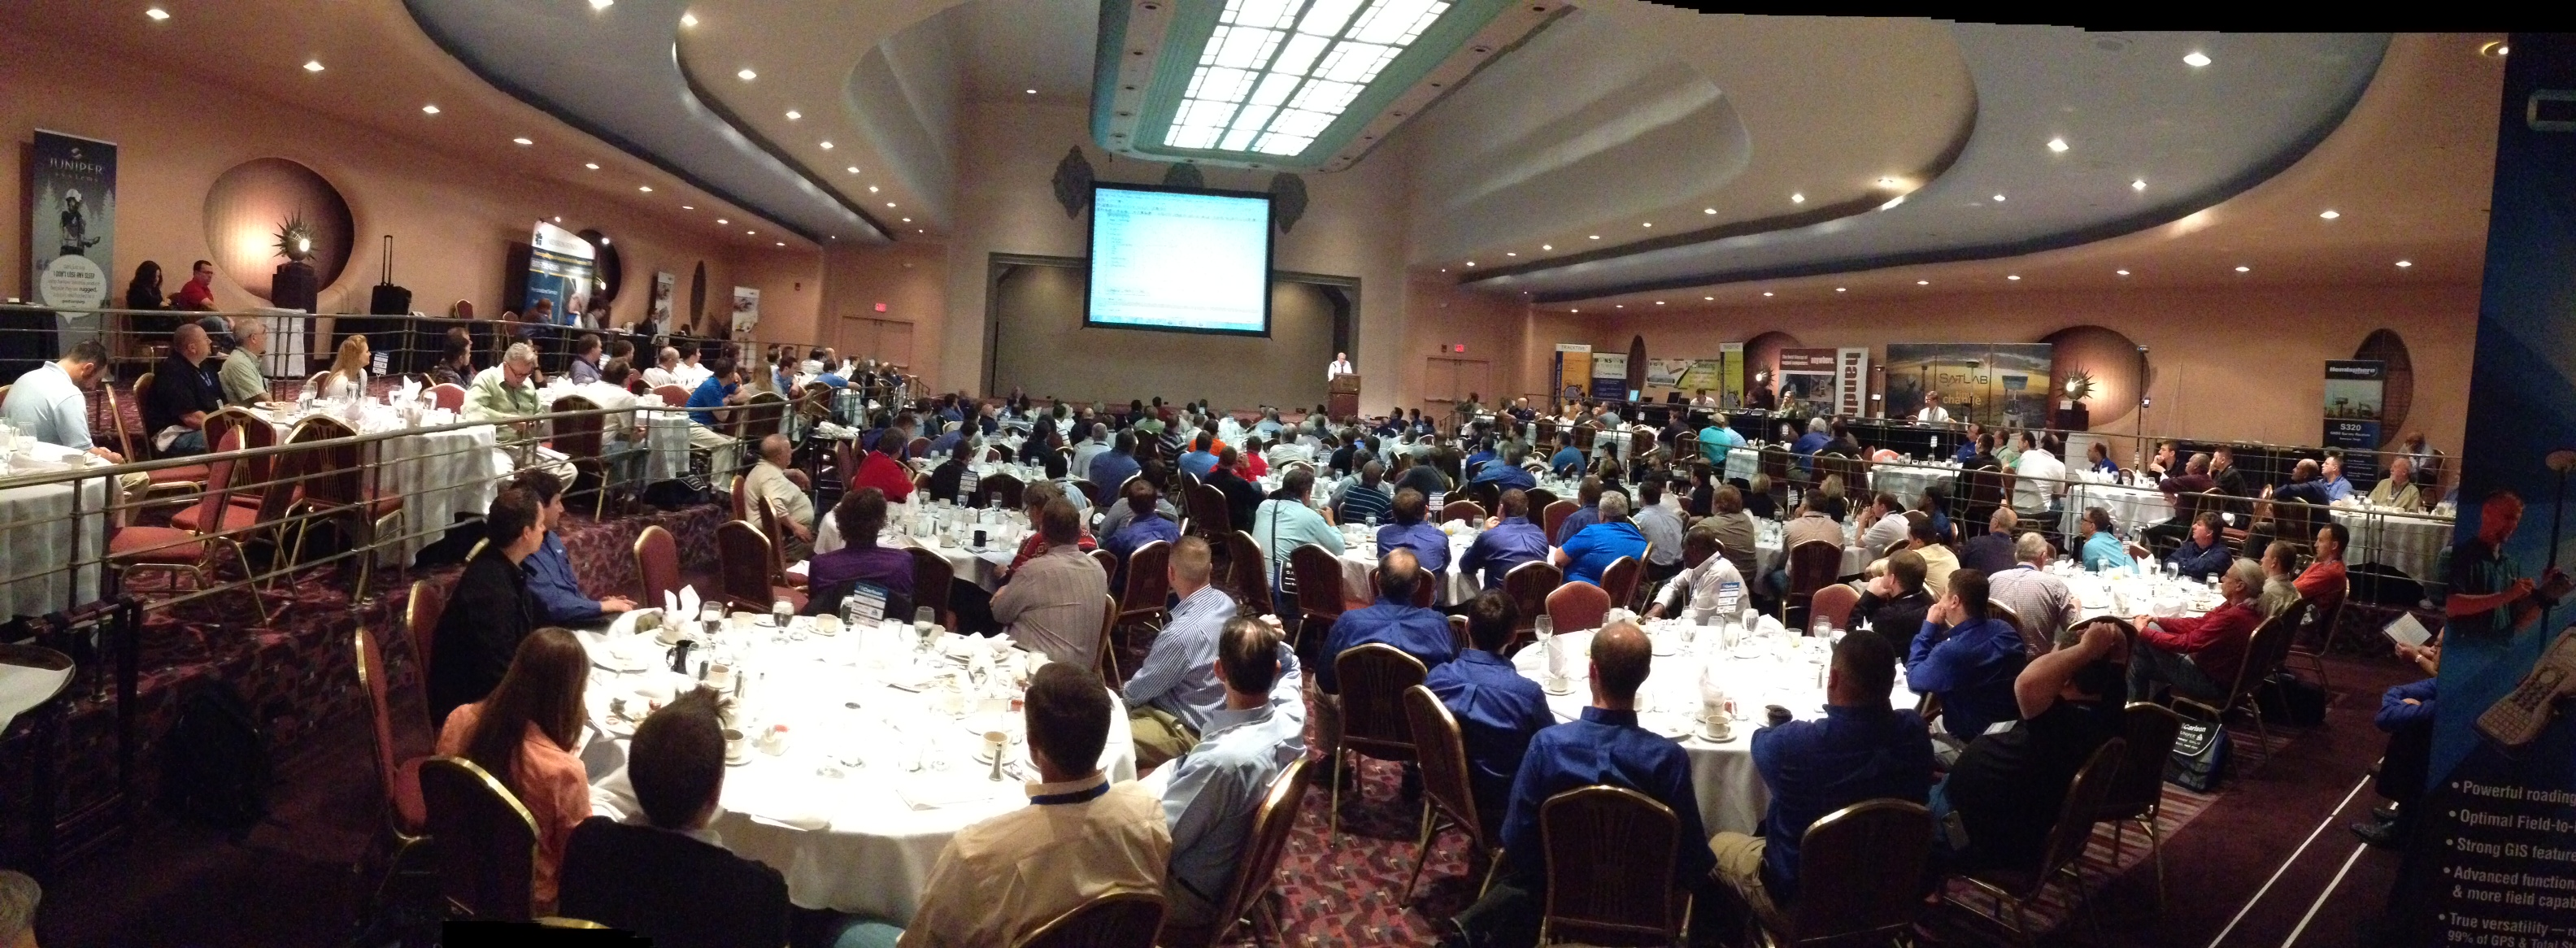 Carlson software users from around the world congregated in Cincinnati for Carlson's 30th Anniversary User Conference.